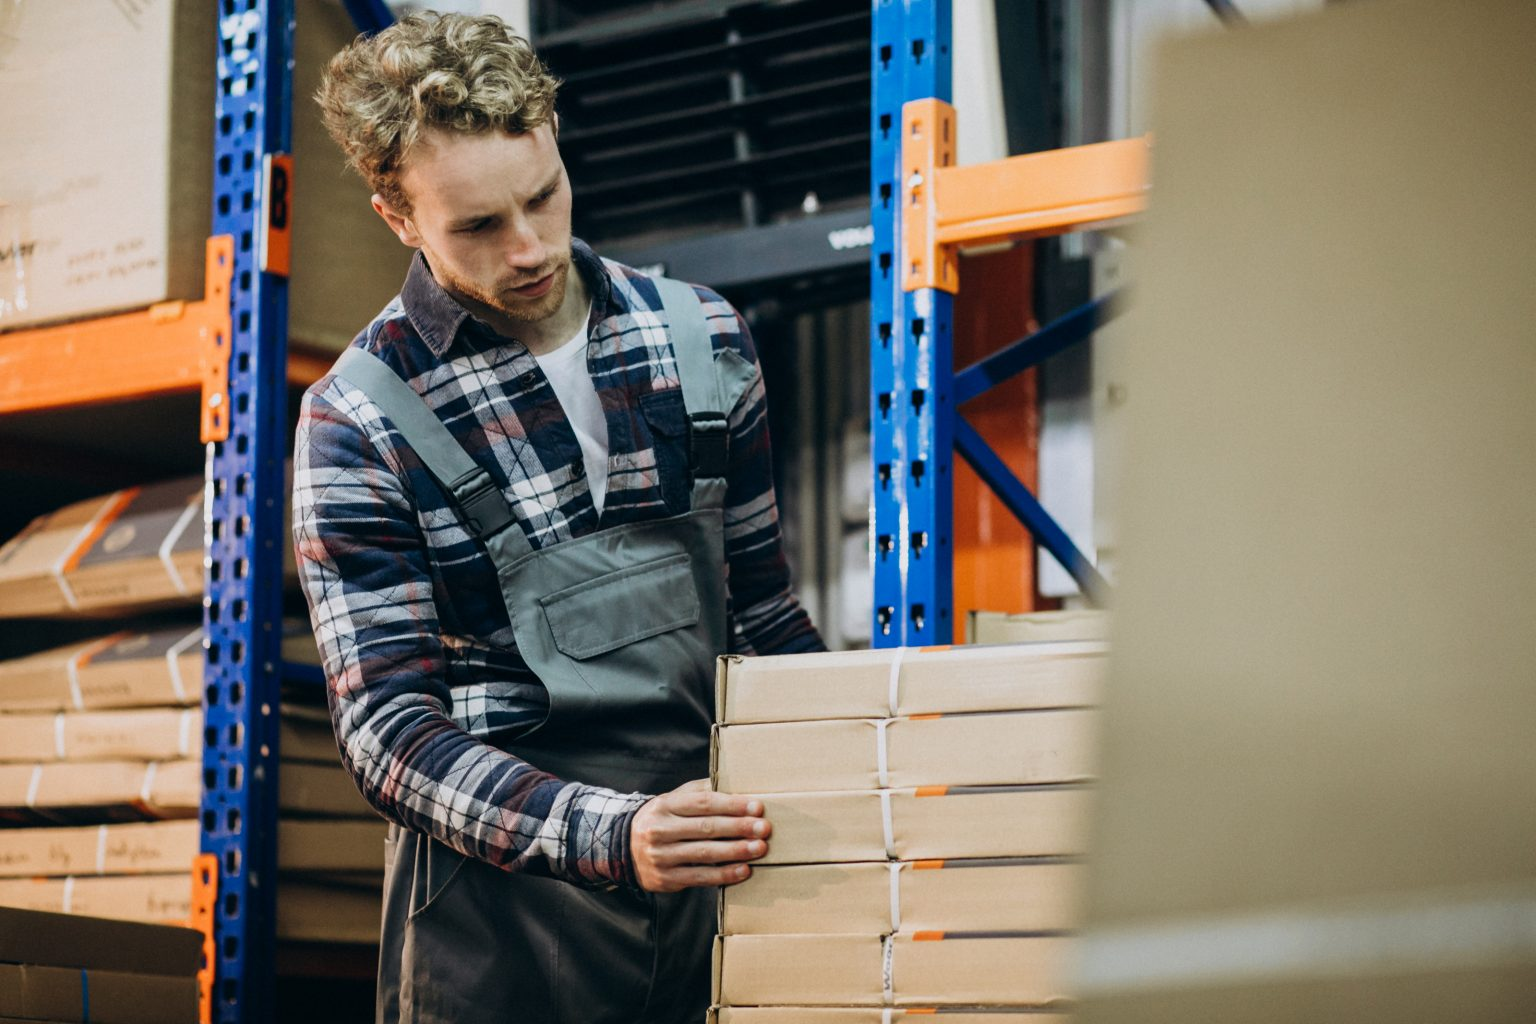 Man working at a carboard factory